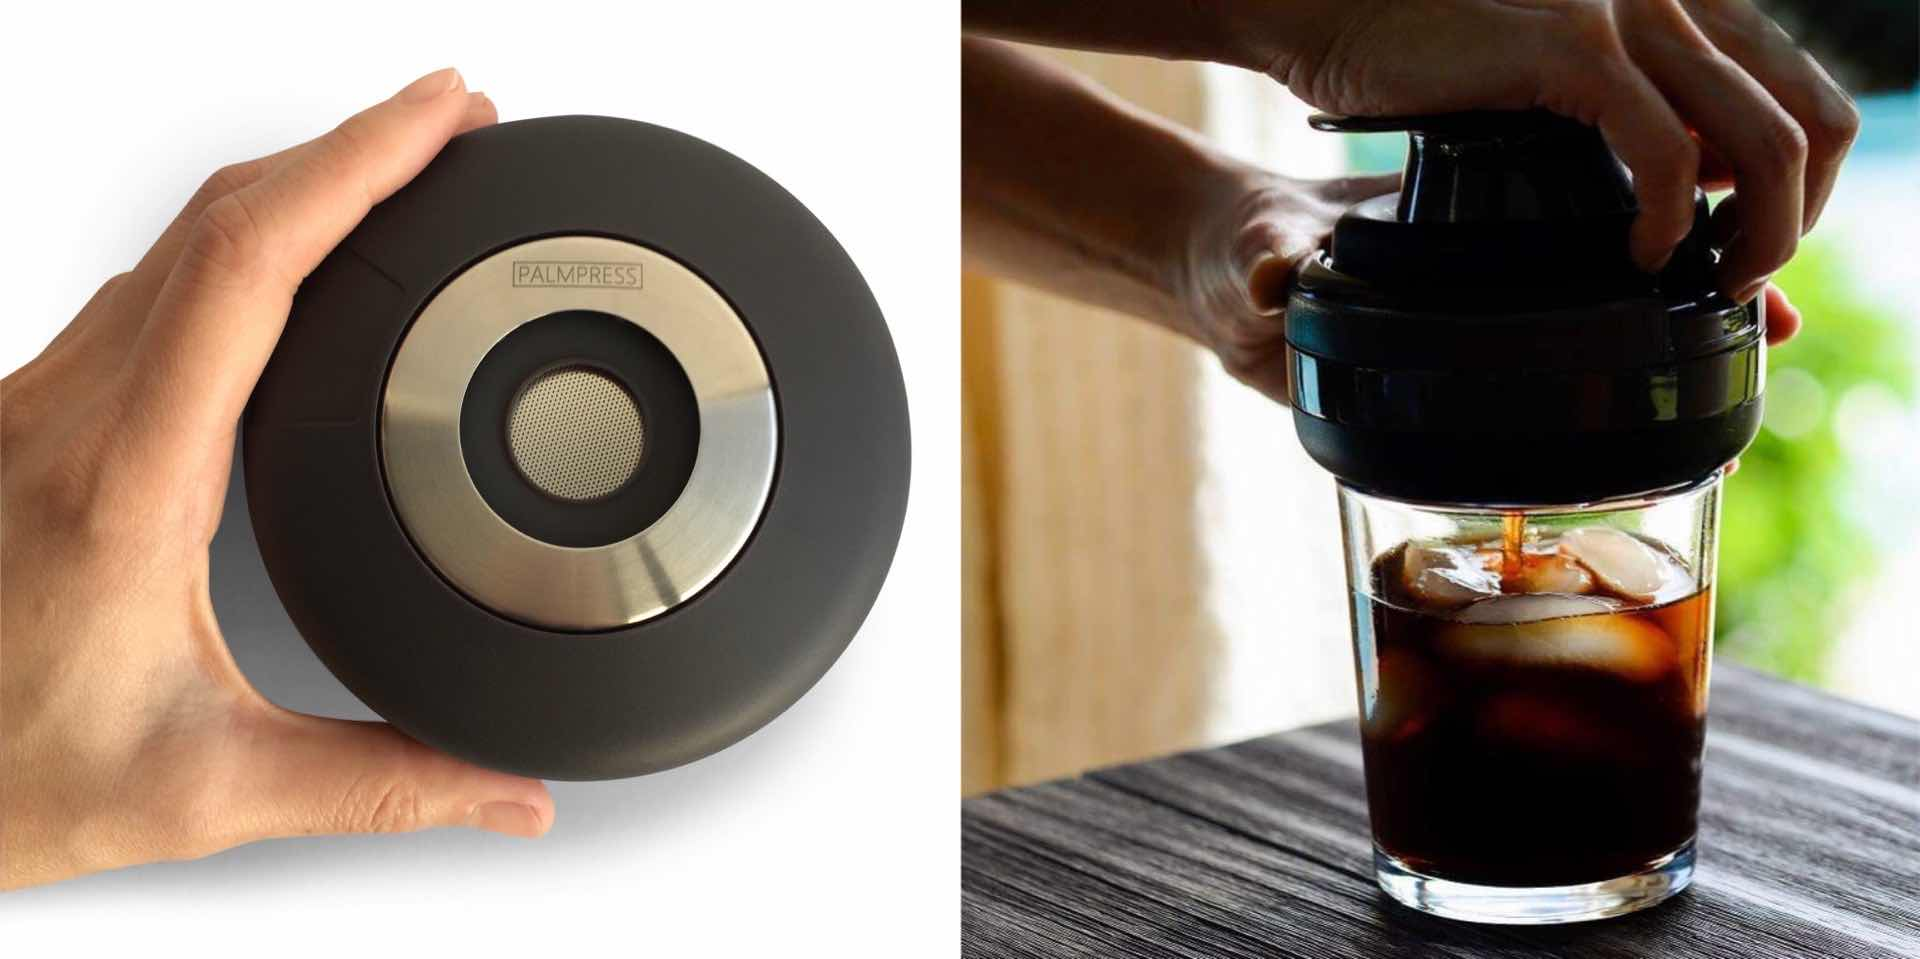 The Palmpress collapsible coffee press. ($39 in black or eggshell blue)